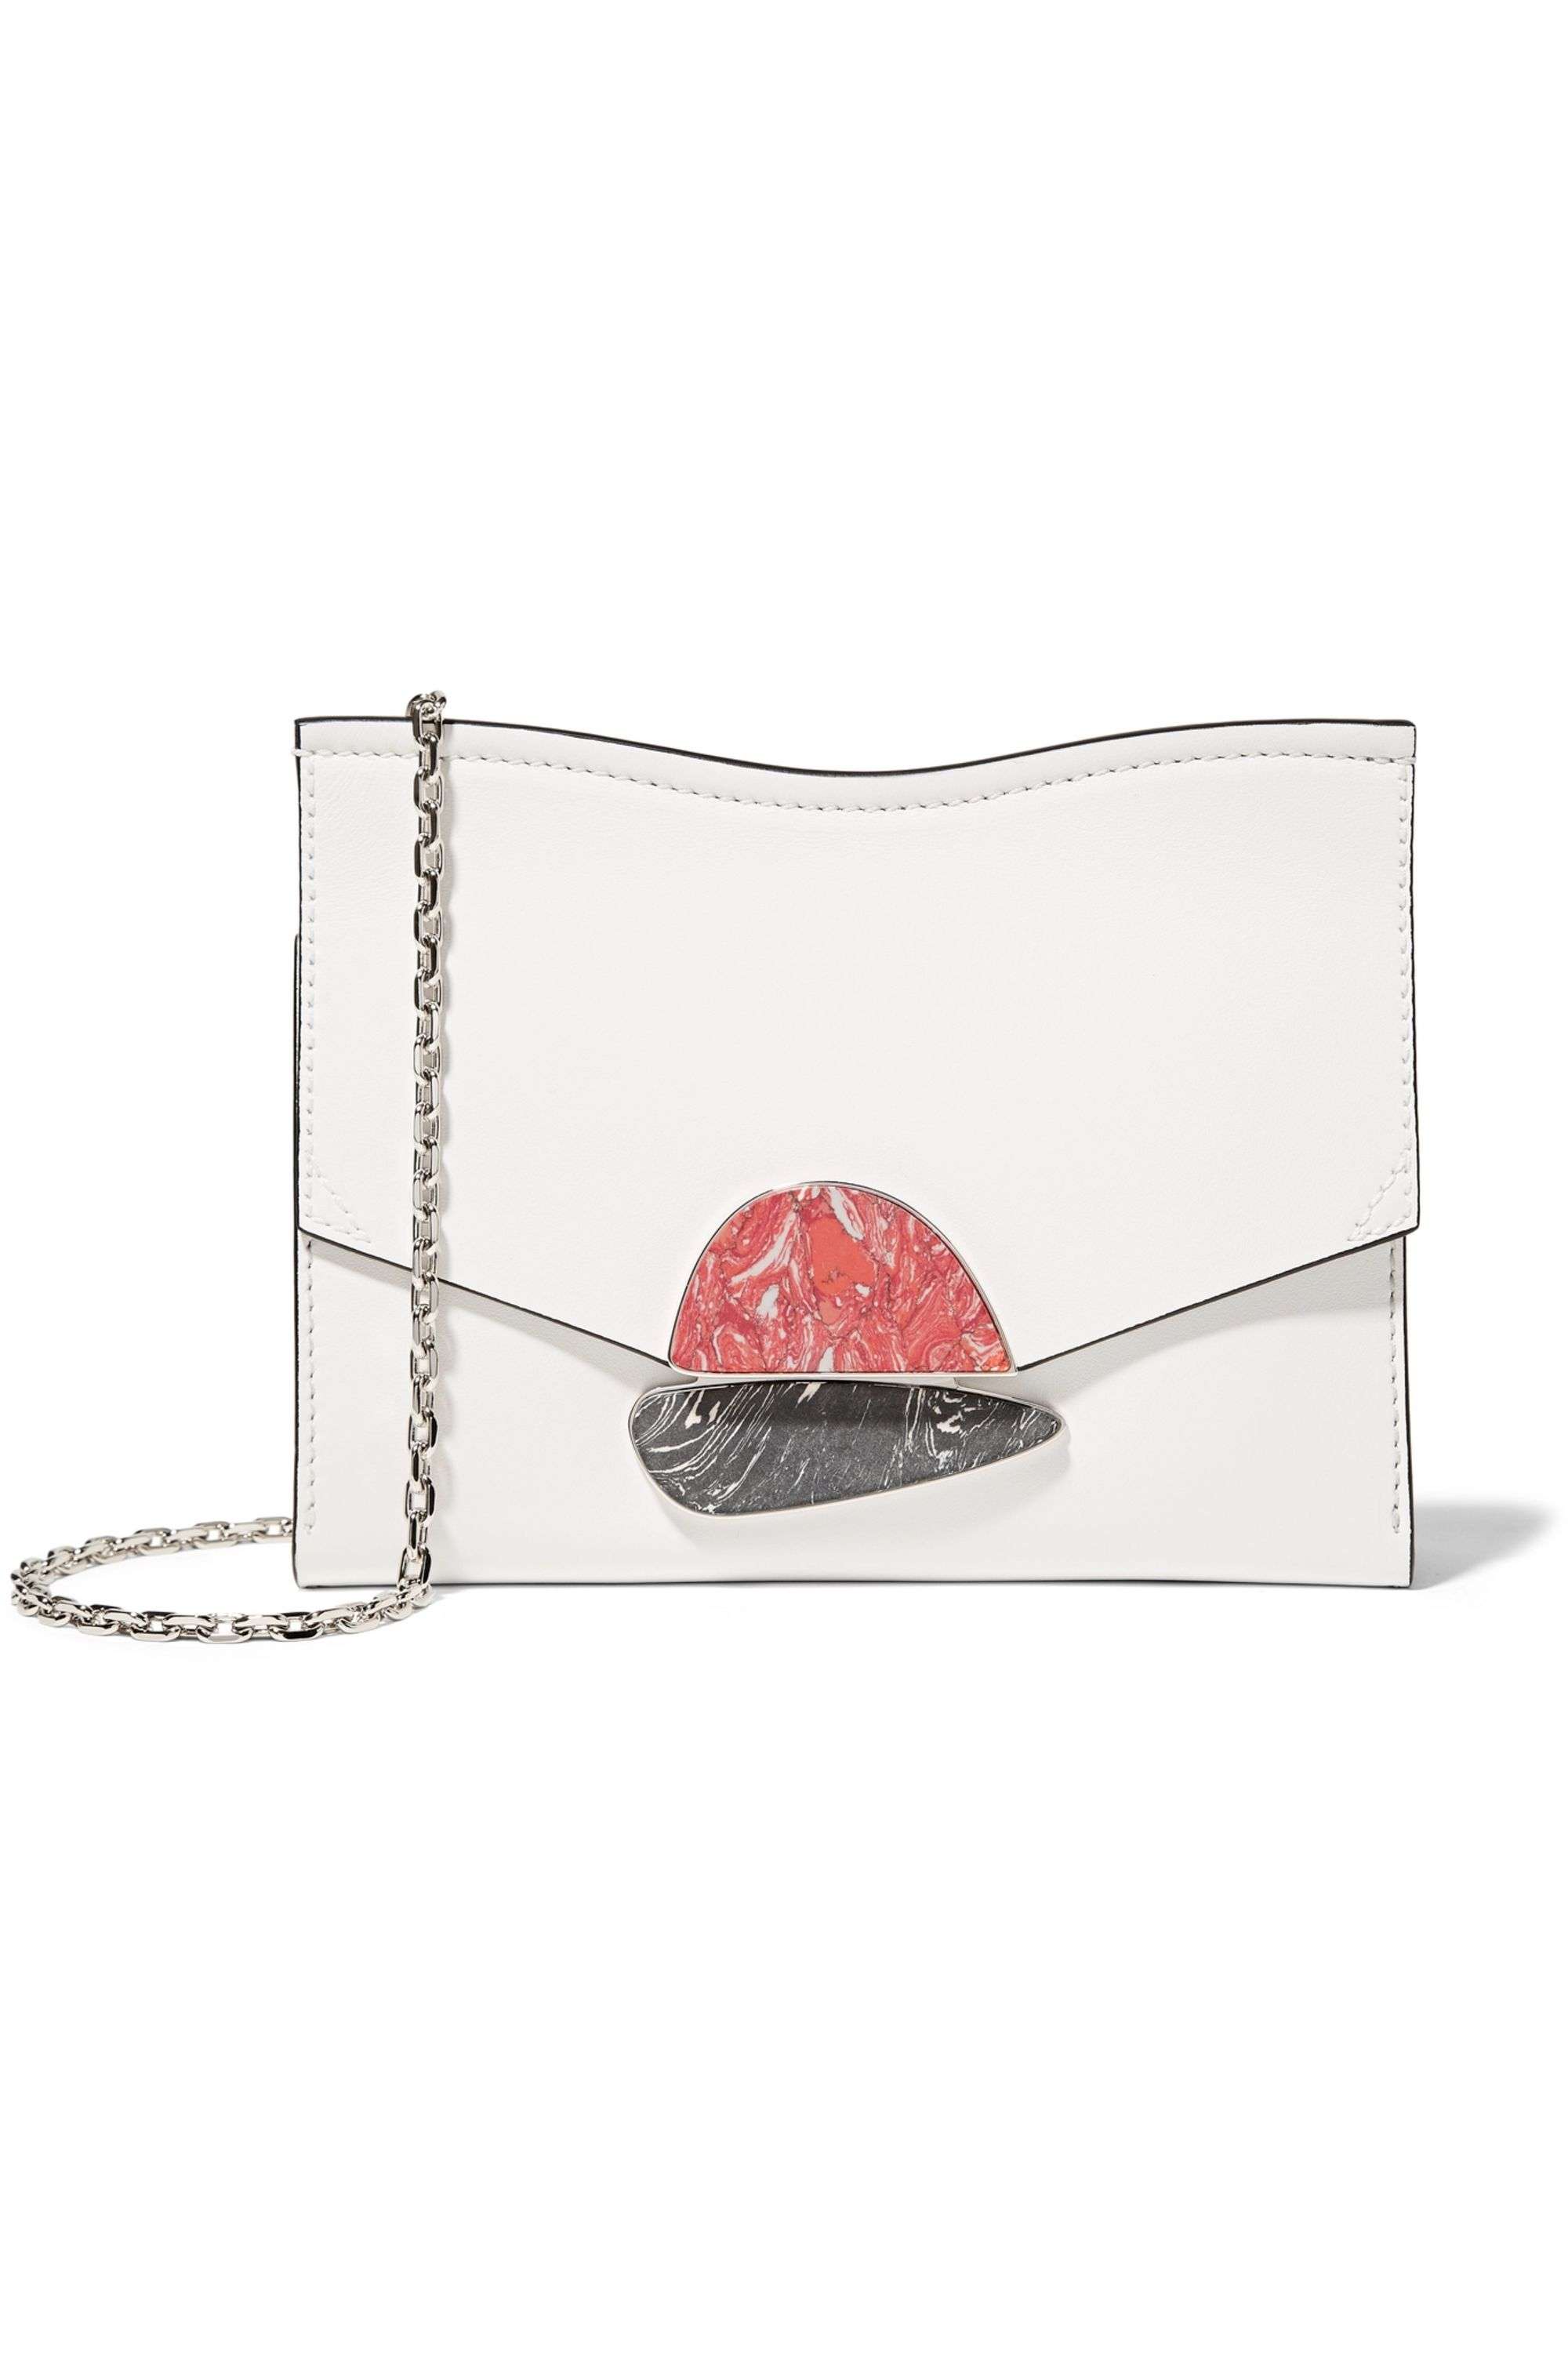 Proenza Schouler Curl embellished leather clutch